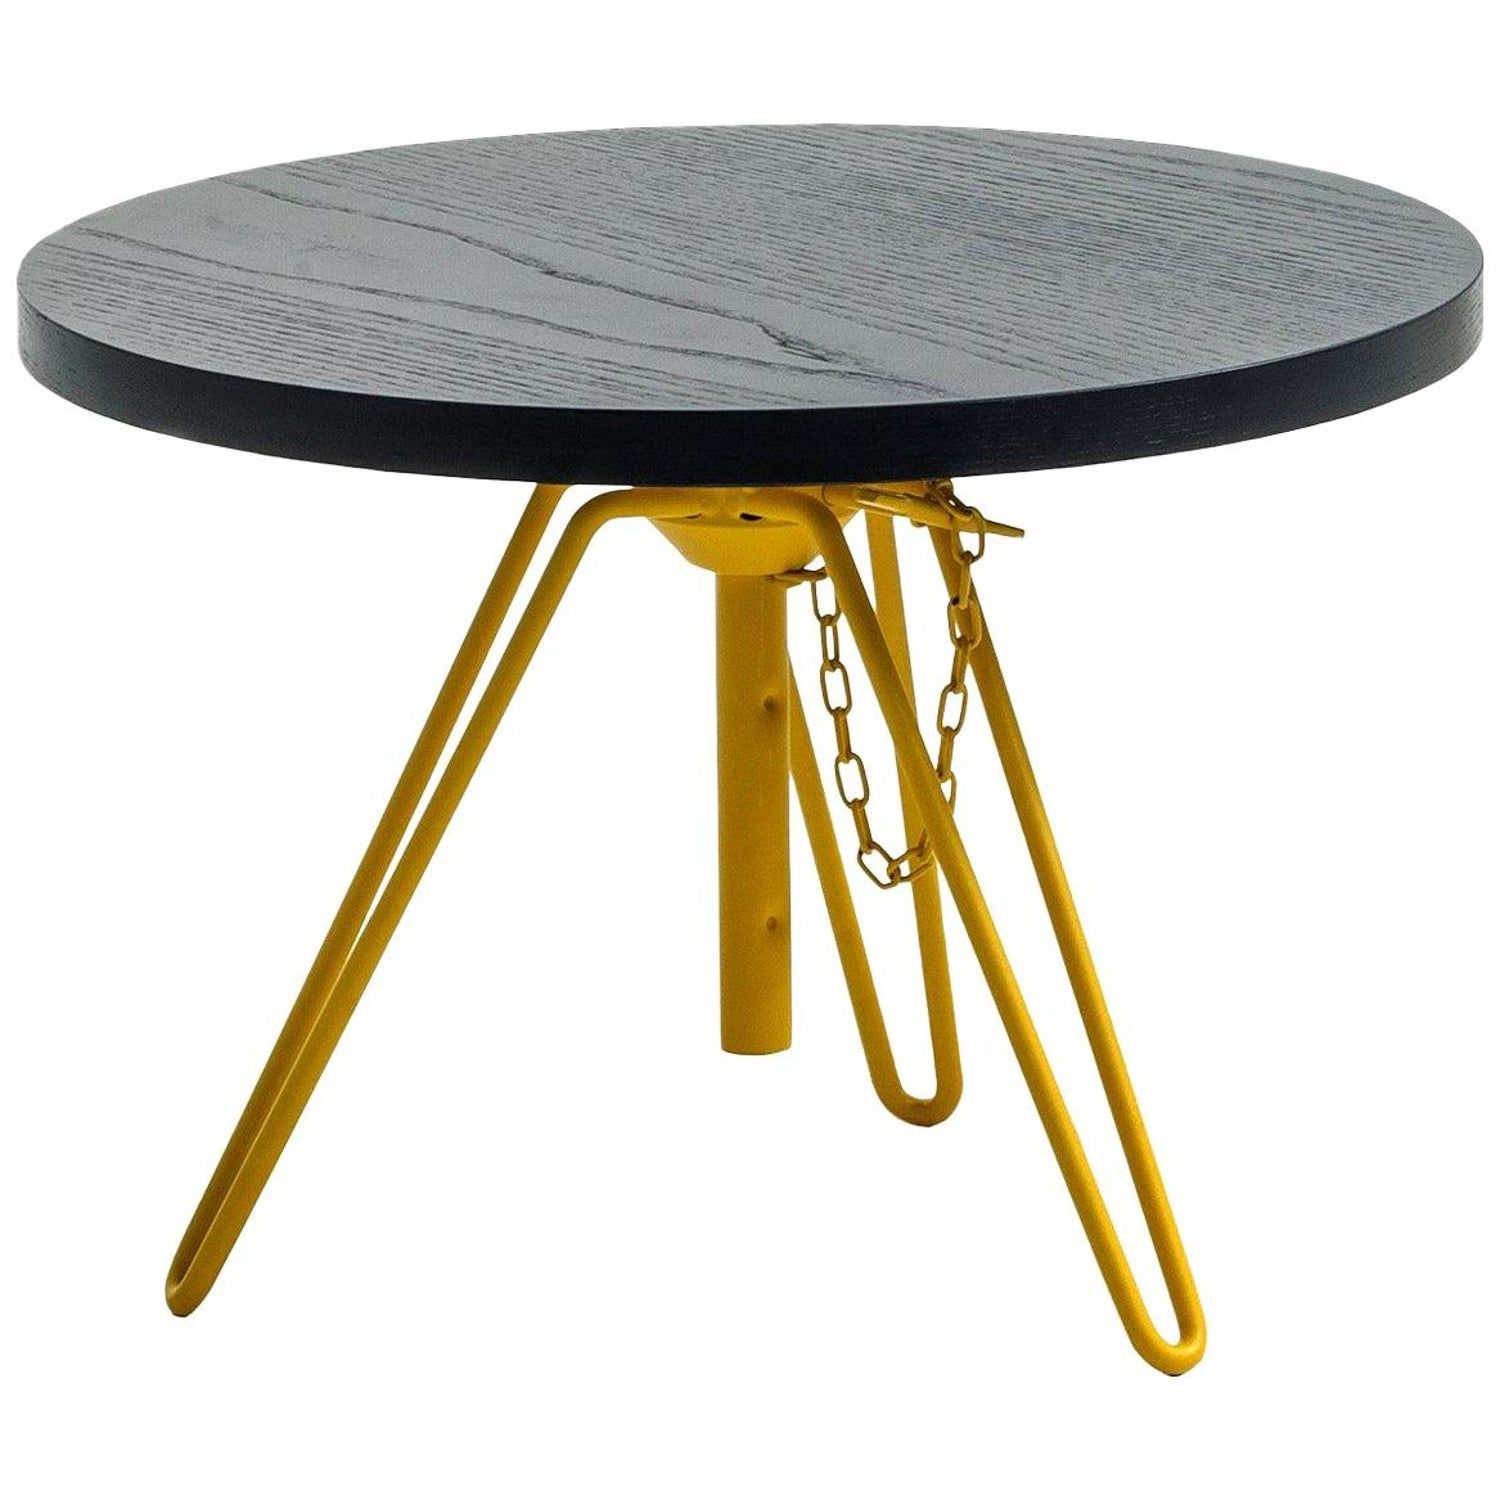 Overdyed Aniline Dyed Ash Veneered Top And Steel Side Table By